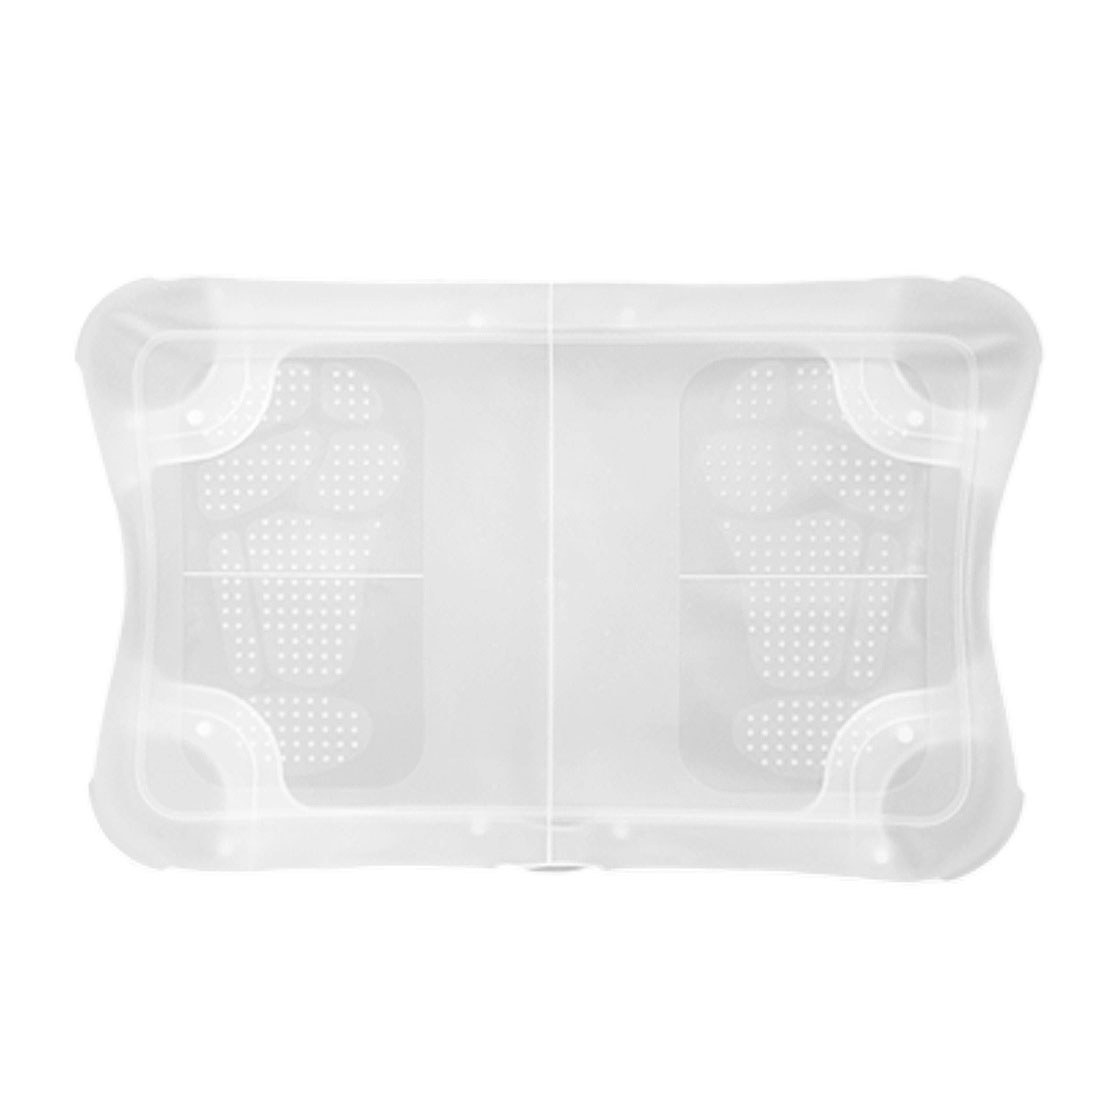 Silicone Skin Case for Wii Fit Balance Board Skin Clear White